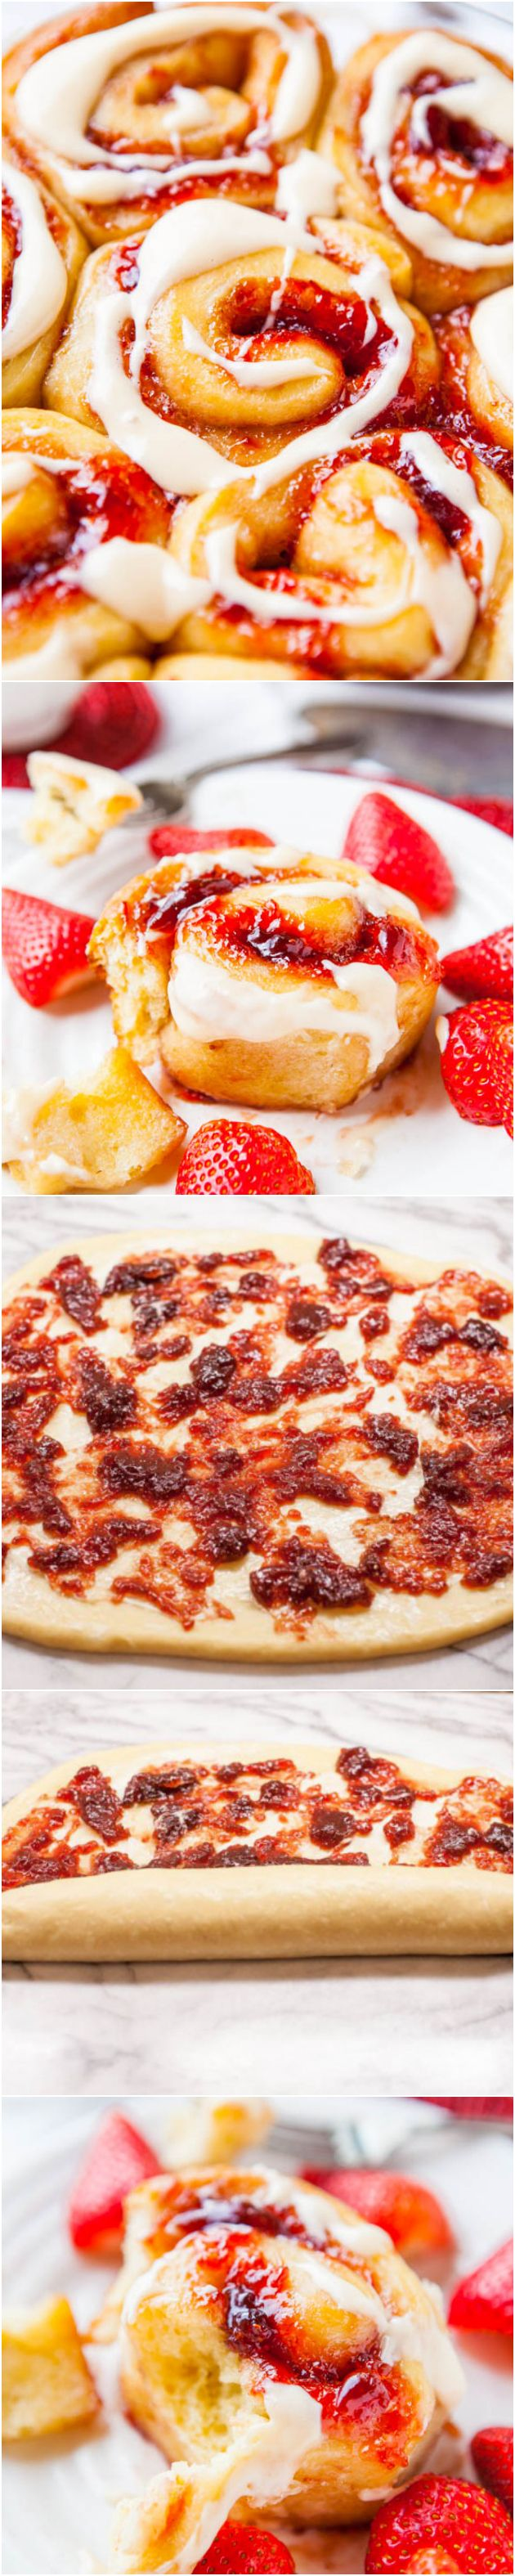 Strawberry Sweet Rolls with Vanilla Cream Cheese Glaze - Soft, buttery rolls loaded with sweet strawberry jam are an automatic hit!  There's an overnight/make-ahead option so you can pop them into the oven whenever you're ready!